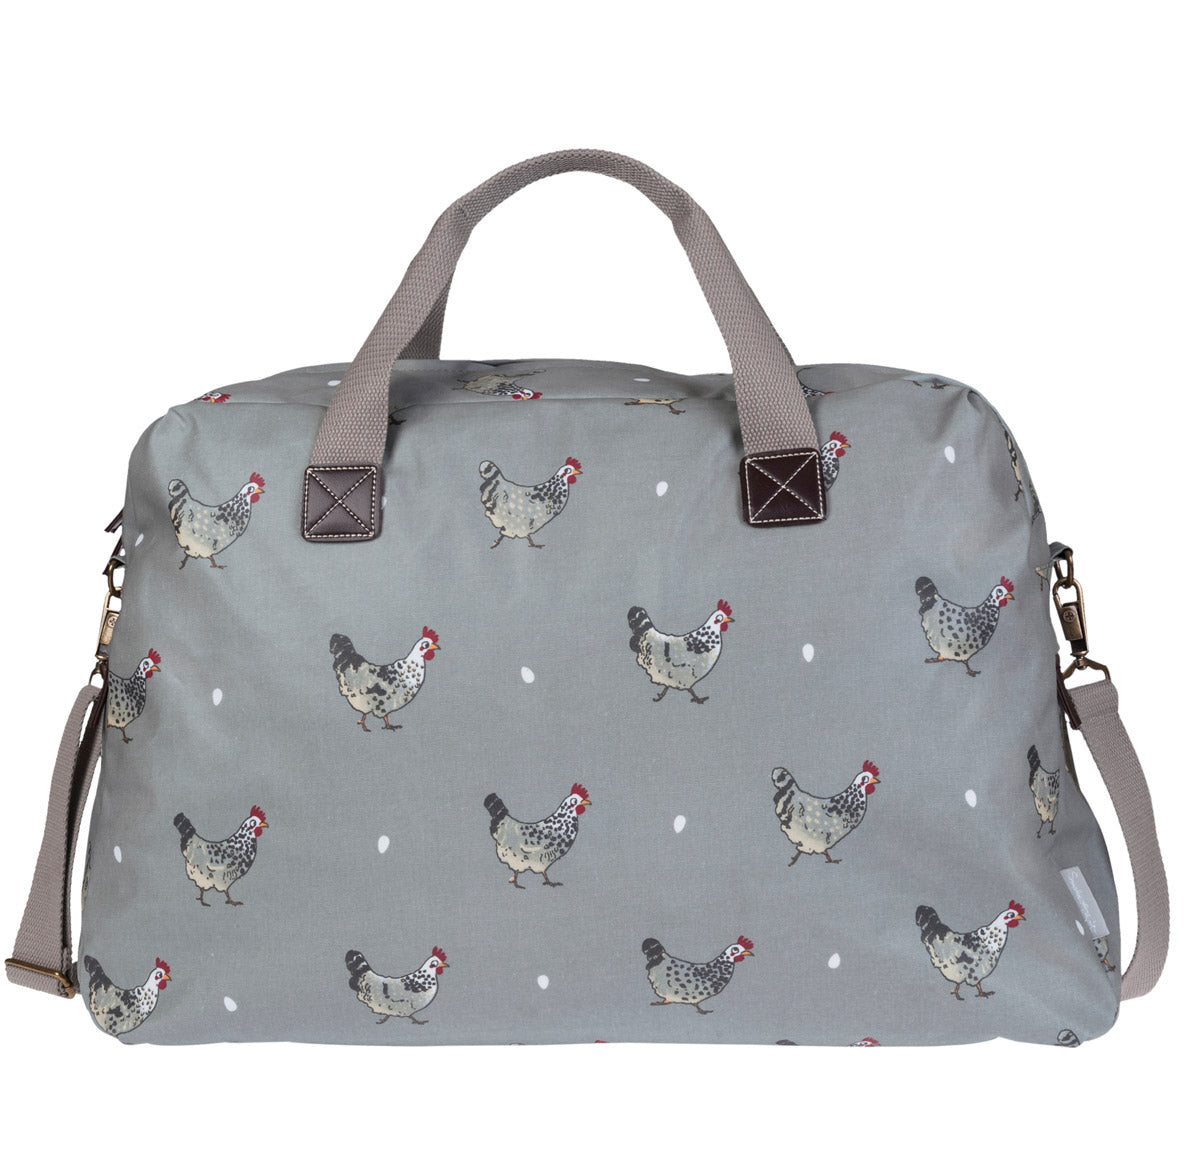 Chicken Oilcloth Weekend Bag